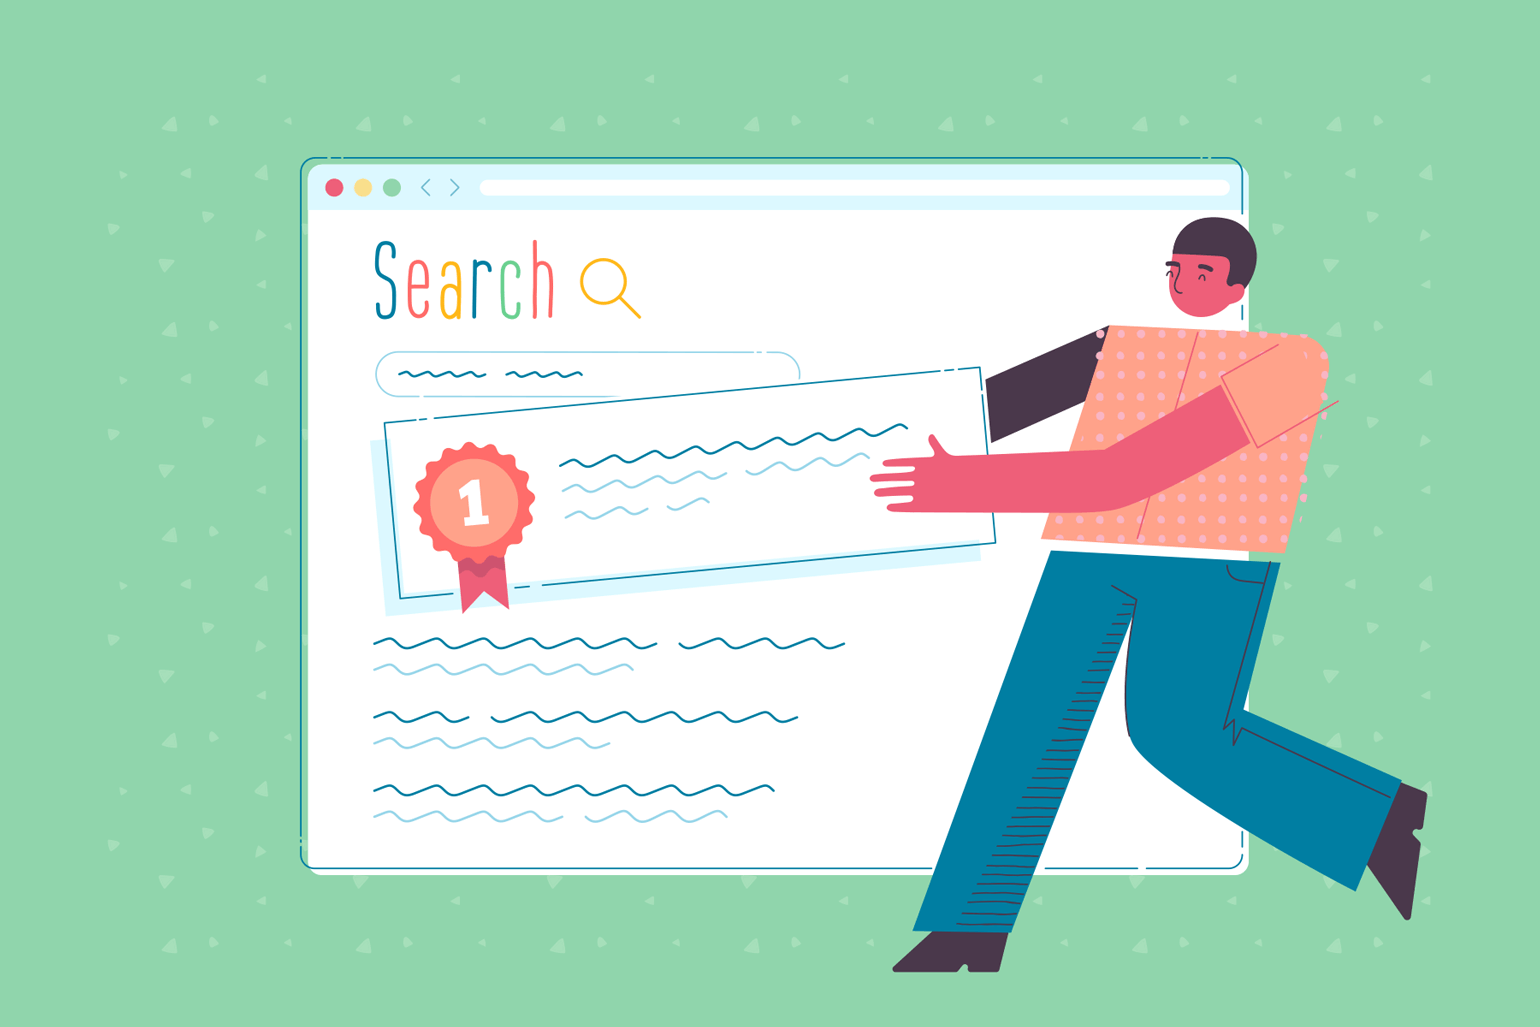 An illustration of a man moving his page to the top of a Google search page